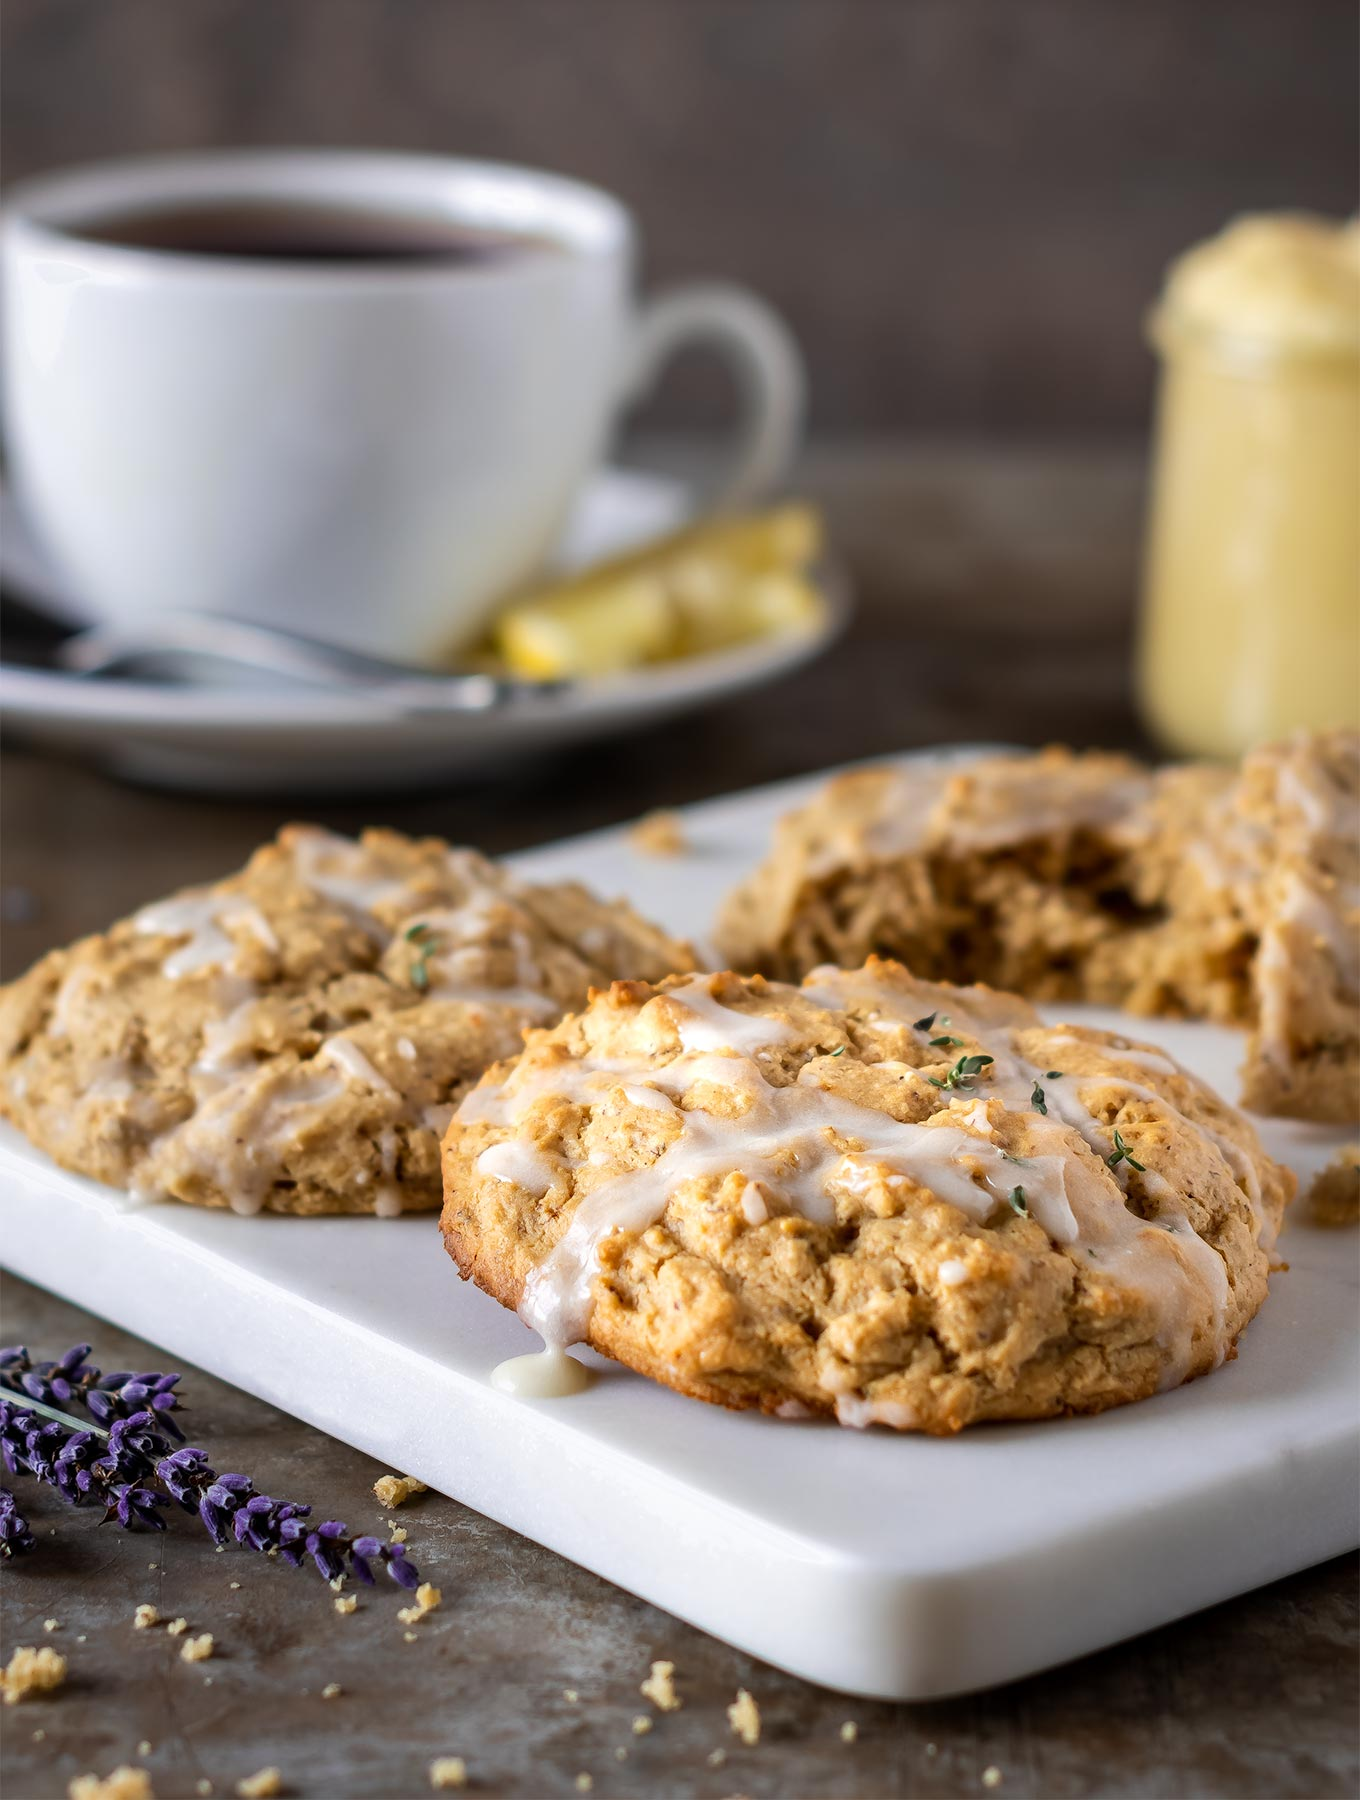 Plate of lemon thyme scones with a cup of tea